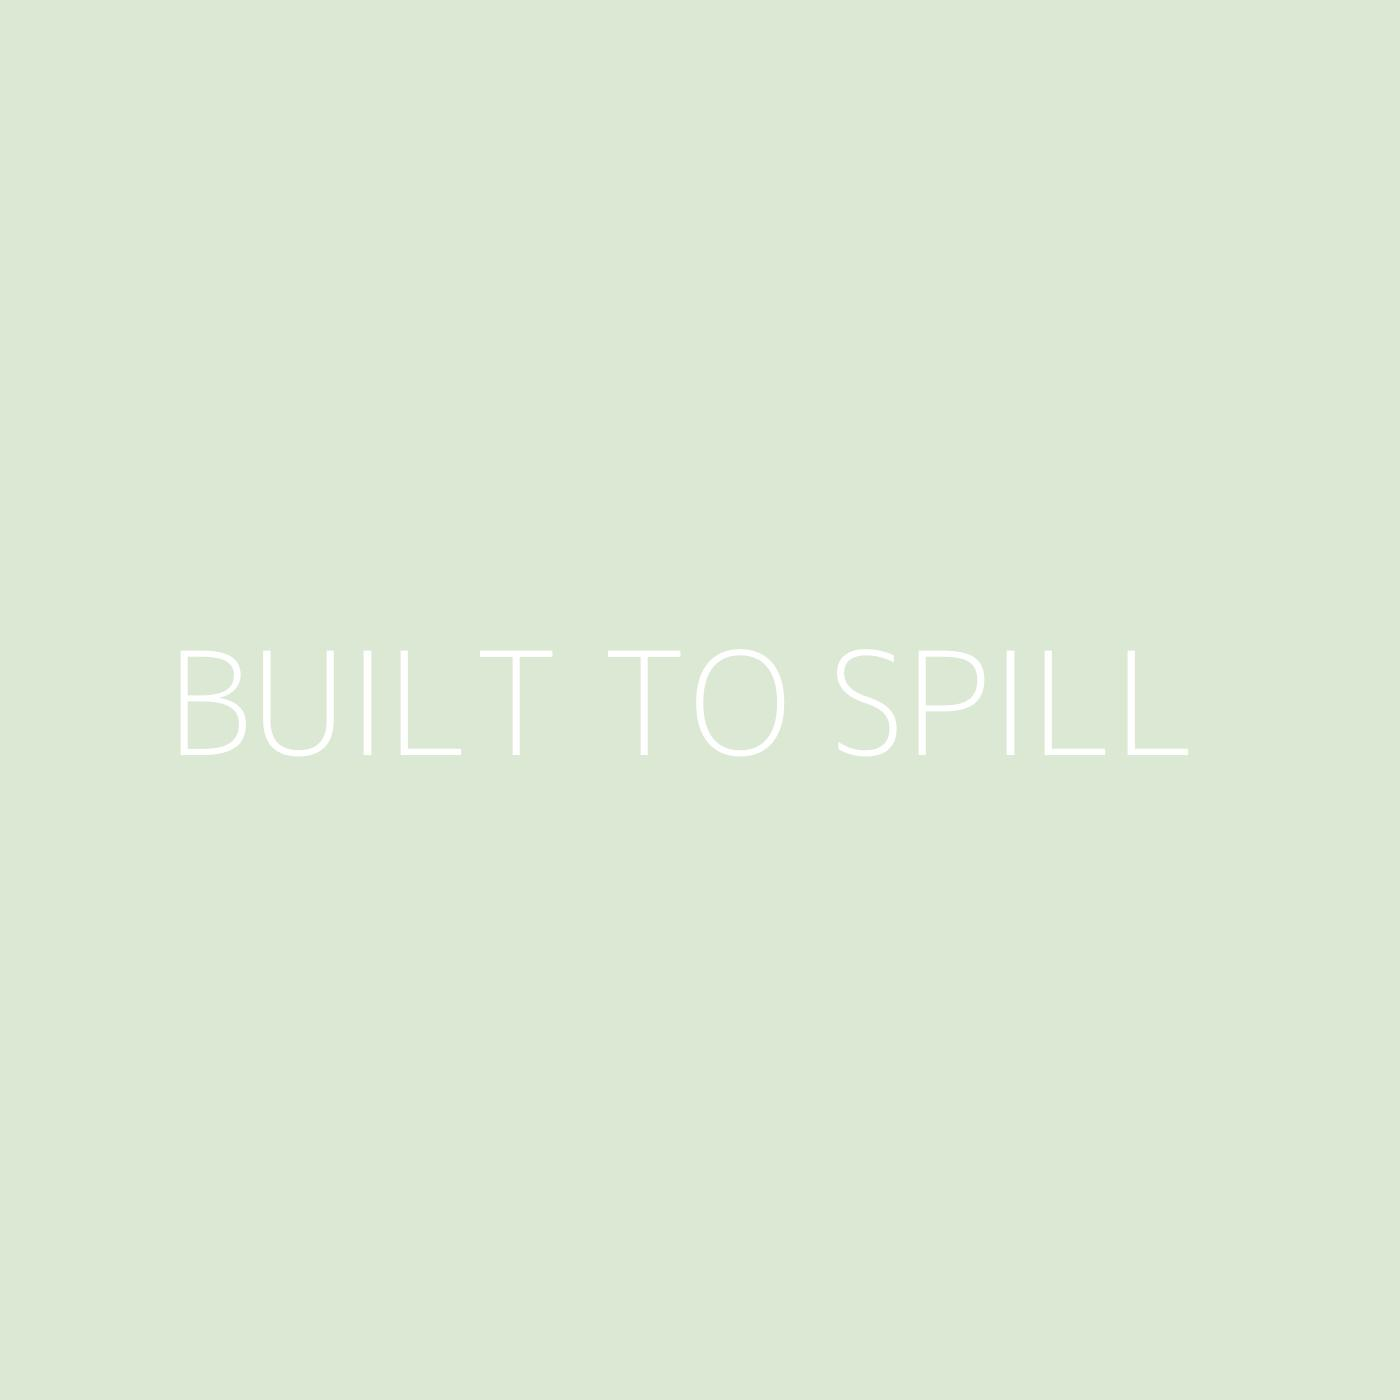 Built To Spill Playlist Artwork